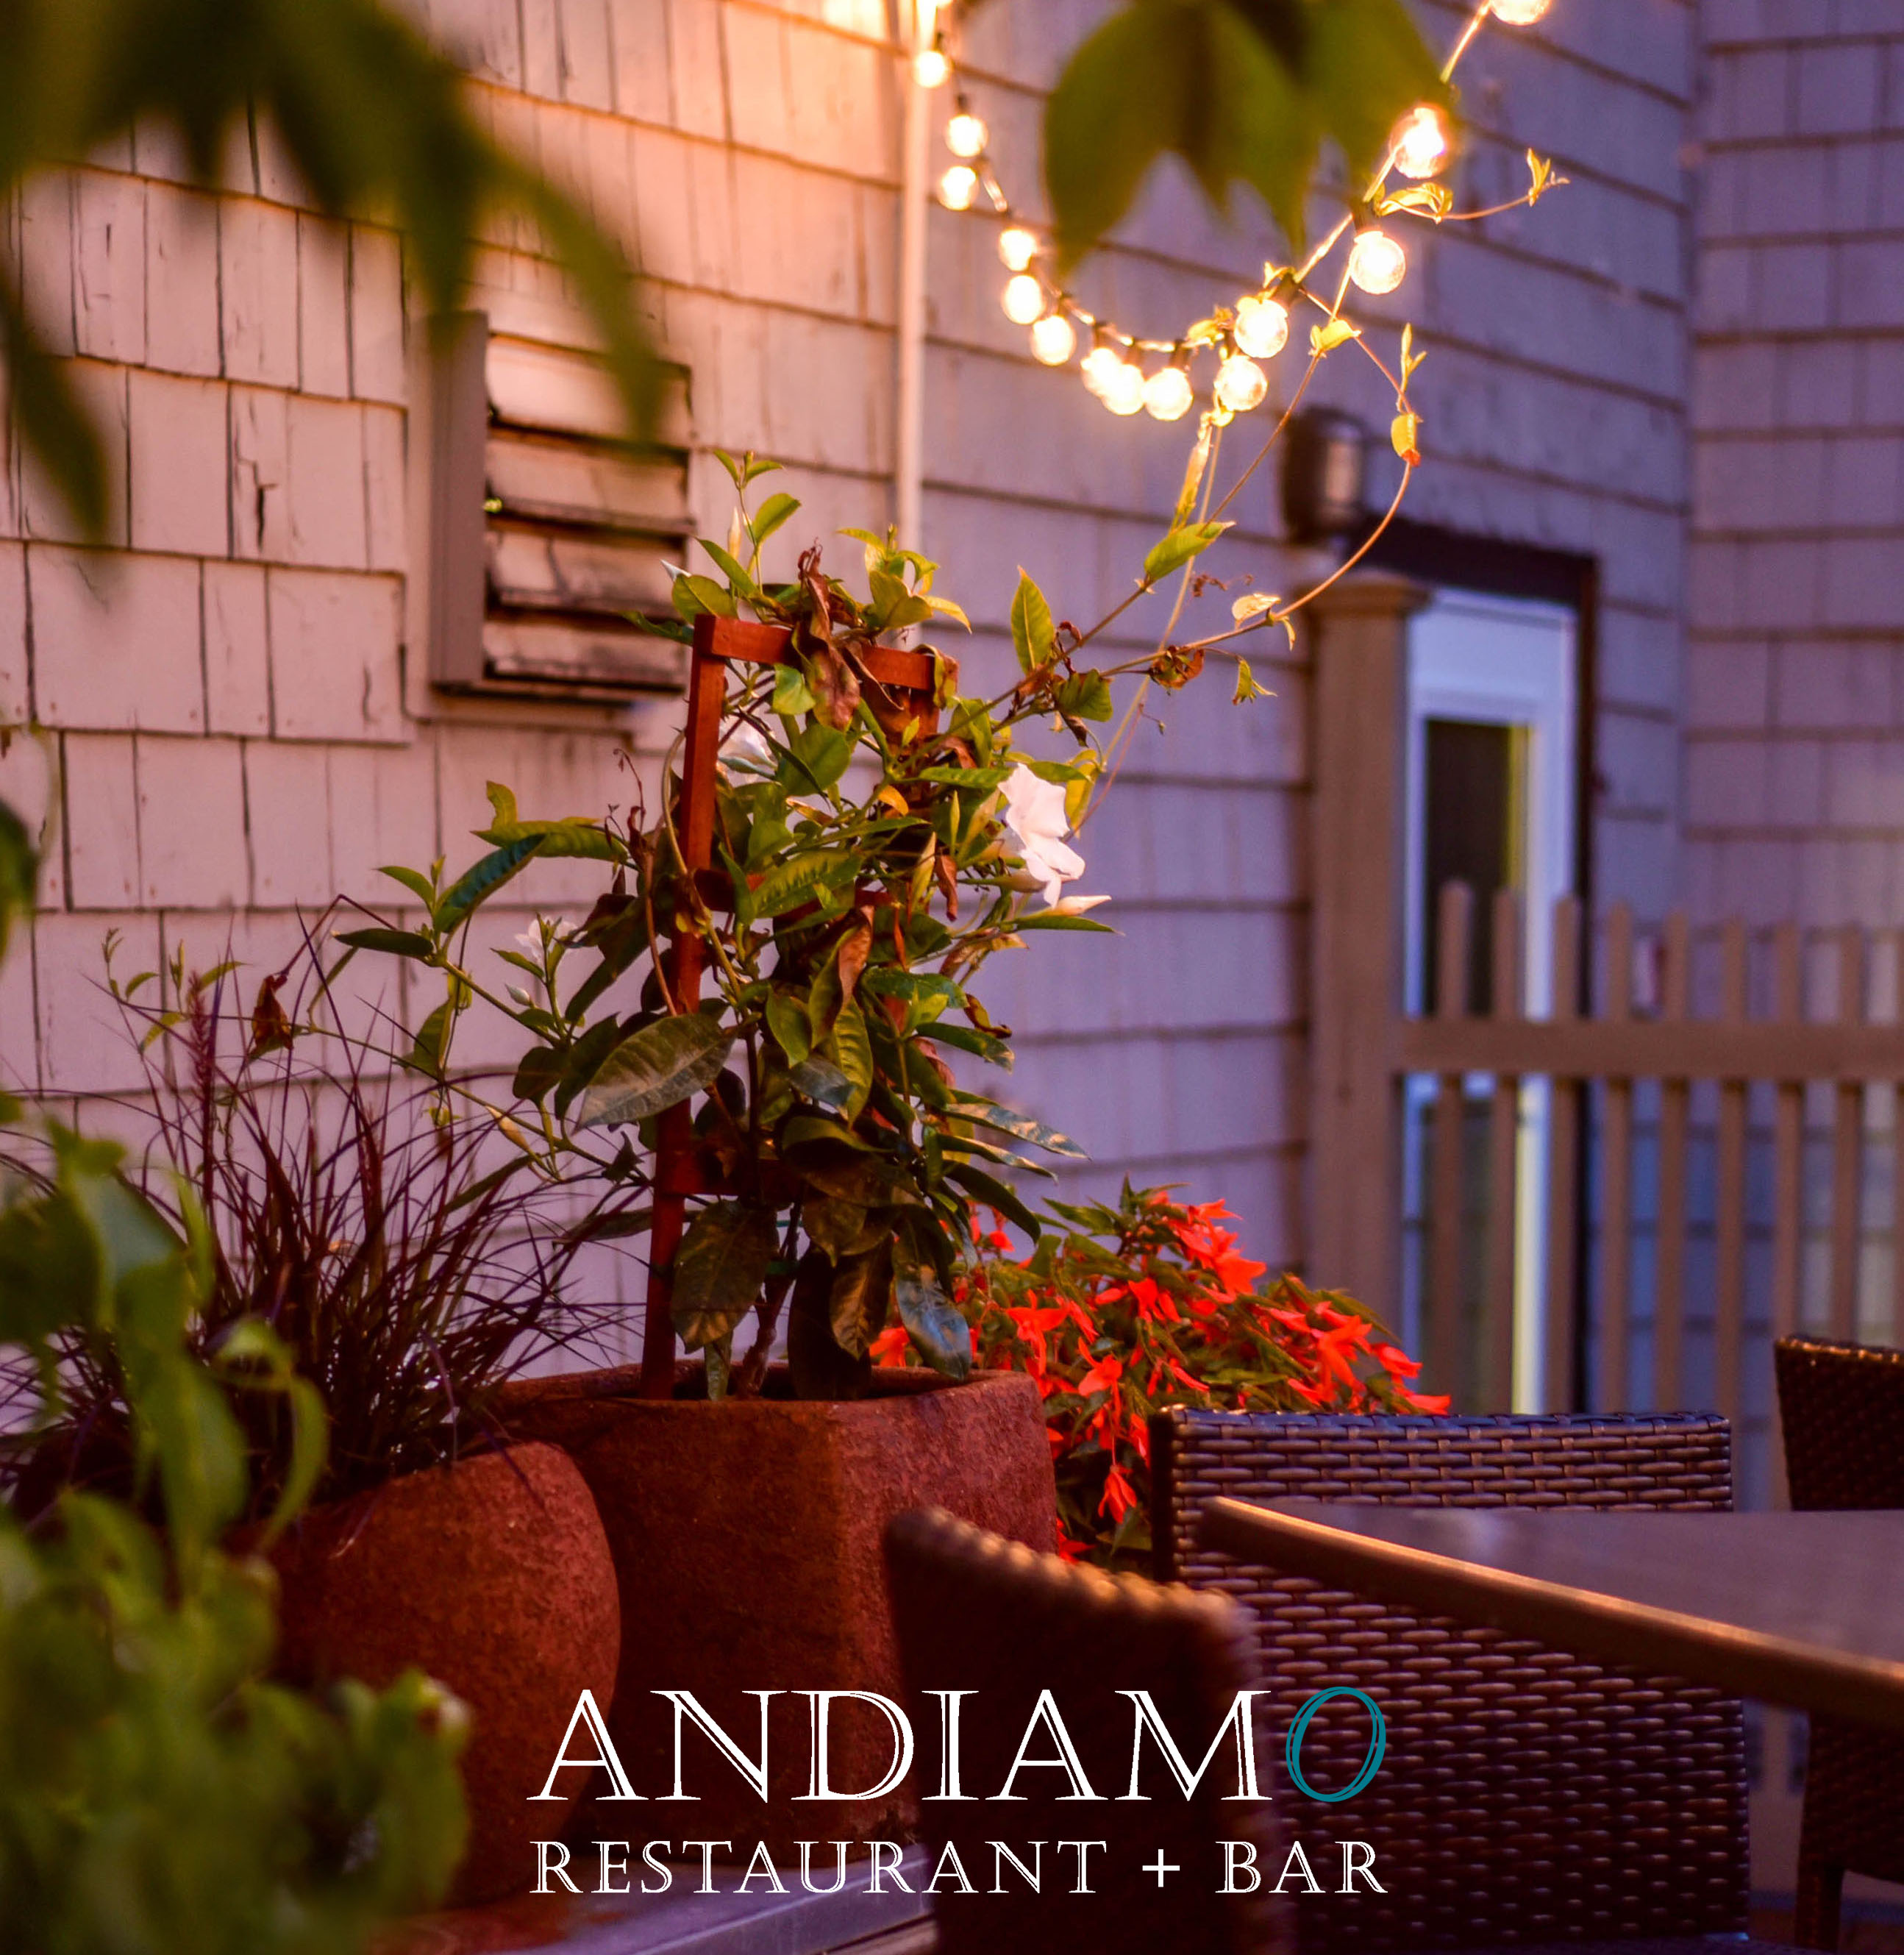 Andiamo Restaurant and Bar